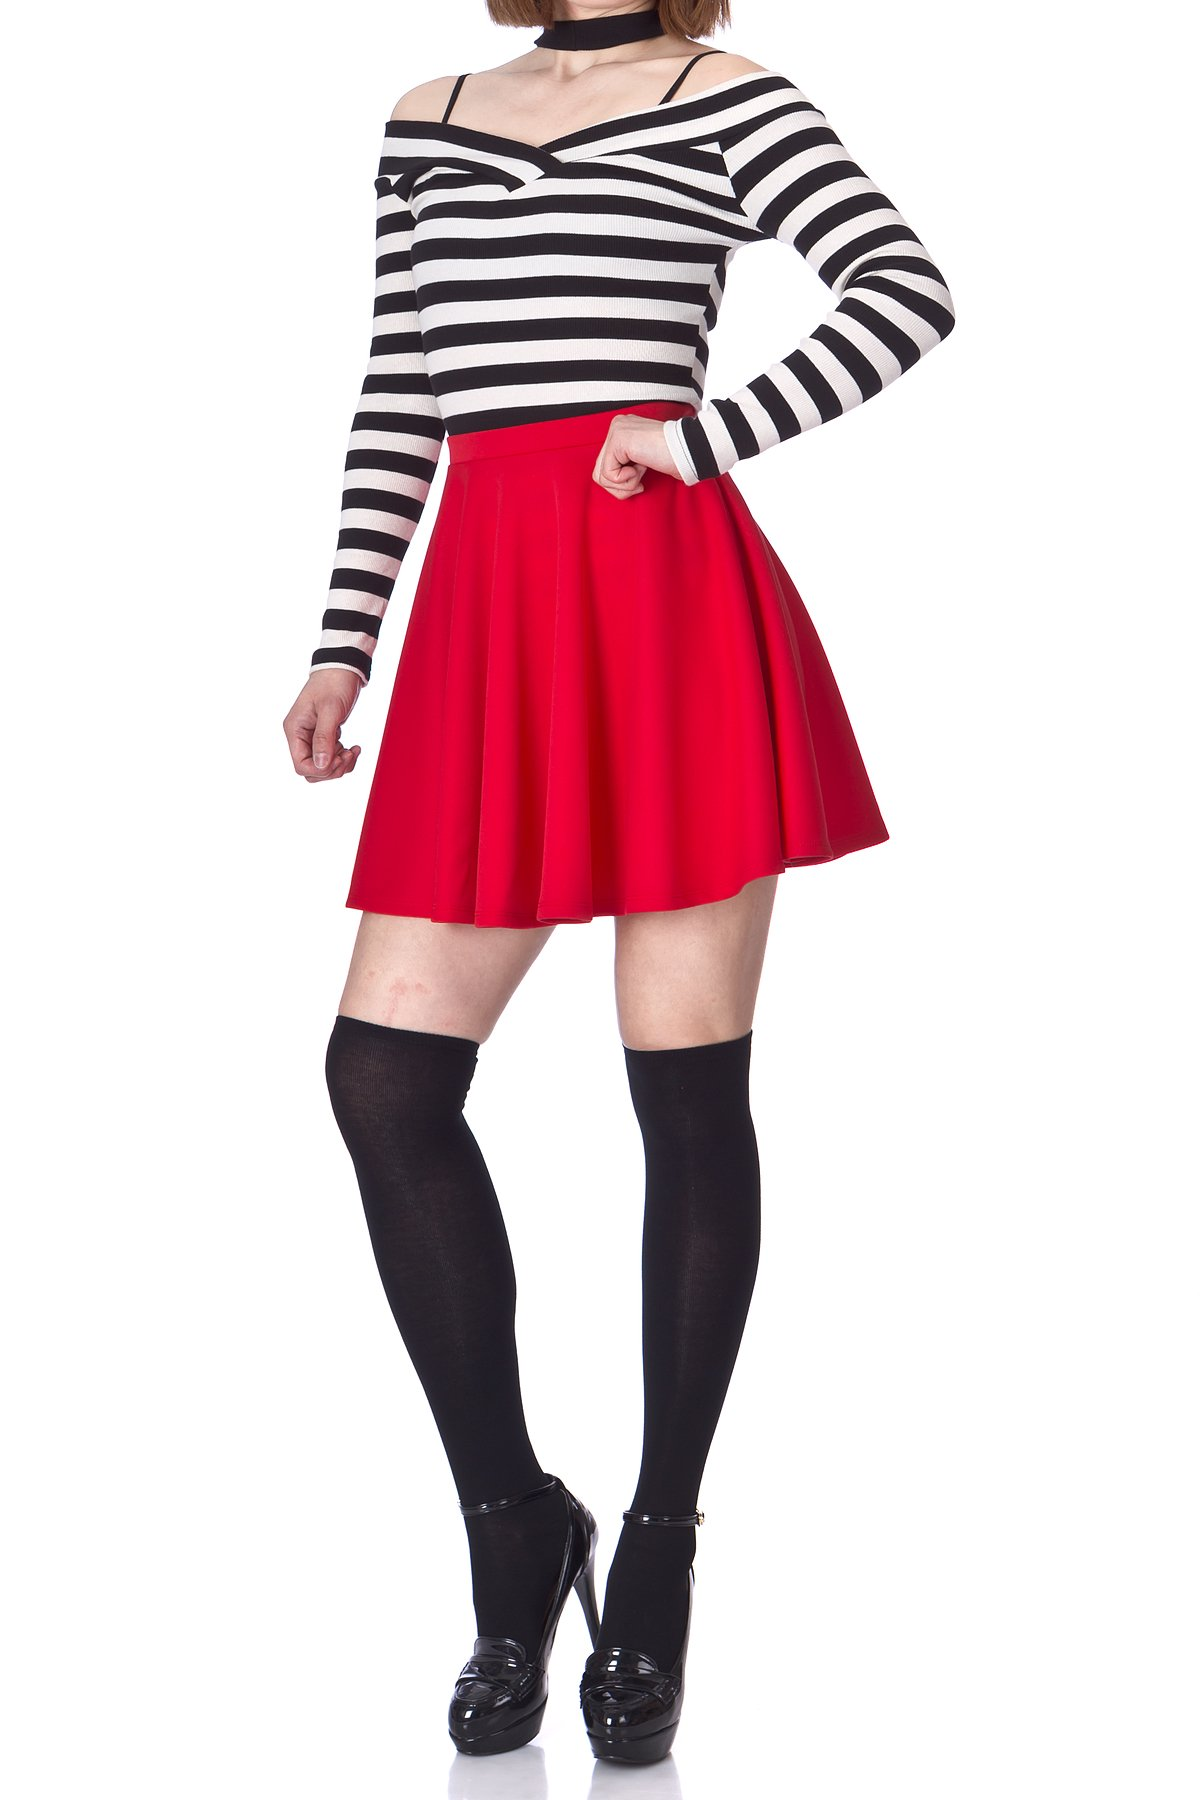 Flouncy High Waist A line Full Flared Circle Swing Dance Party Casual Skater Short Mini Skirt Red 04 1